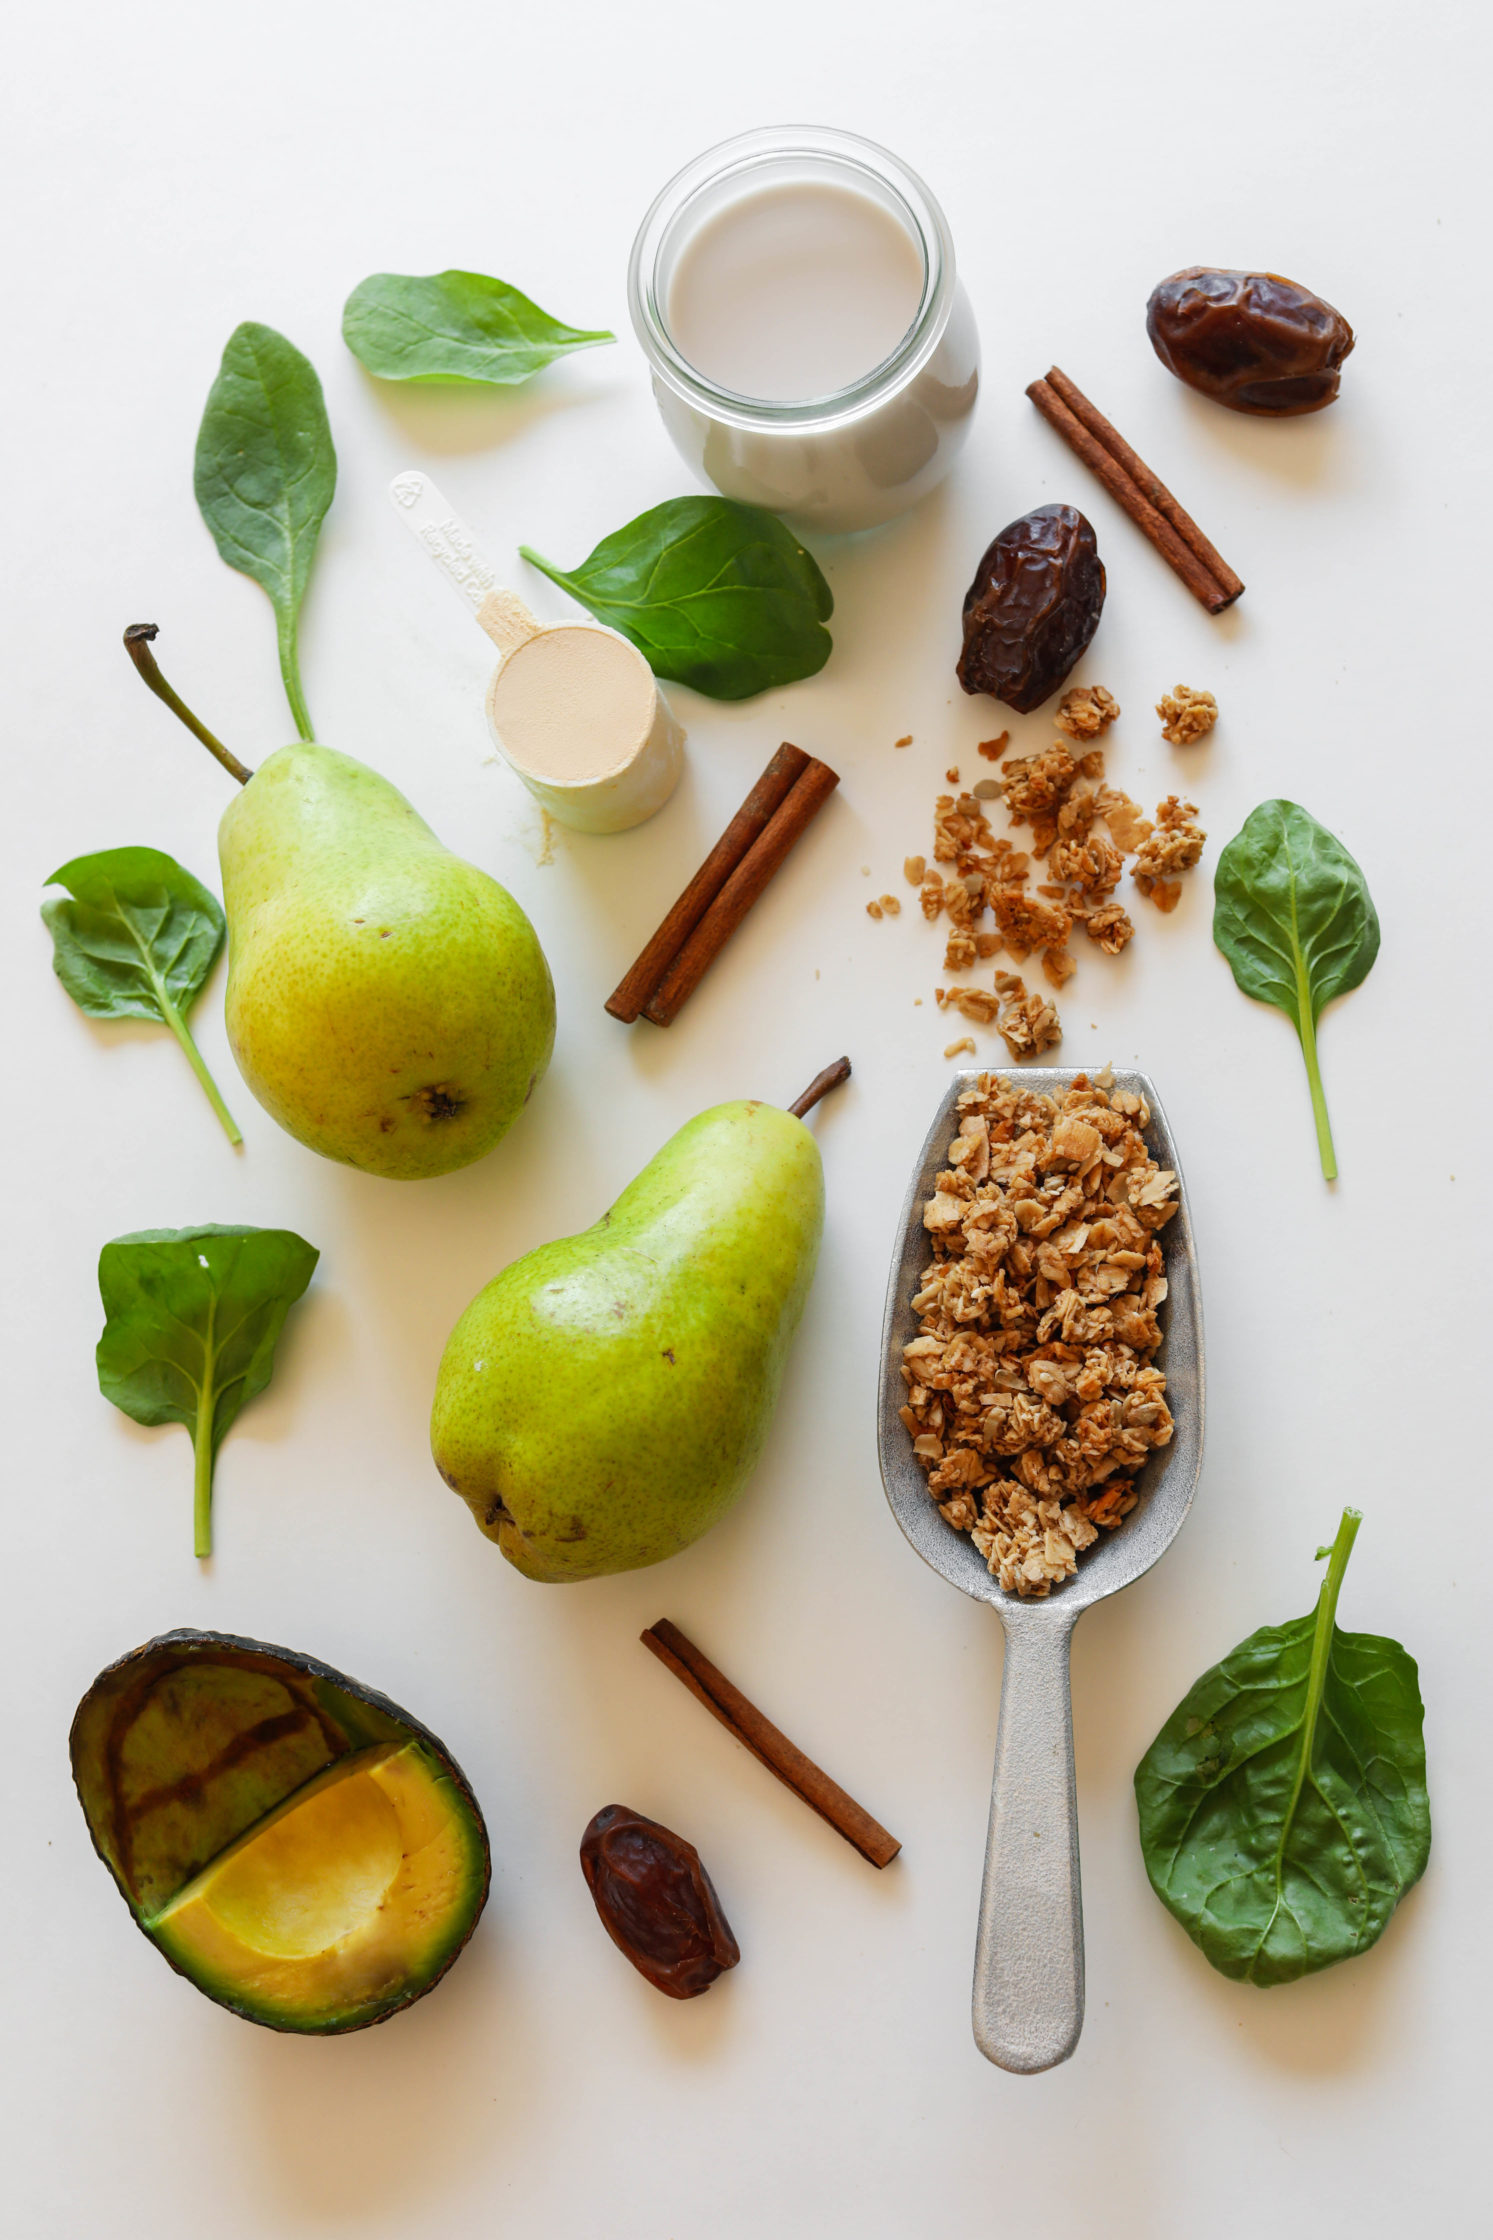 Spiced Green Pear Protein Shake Ingredients